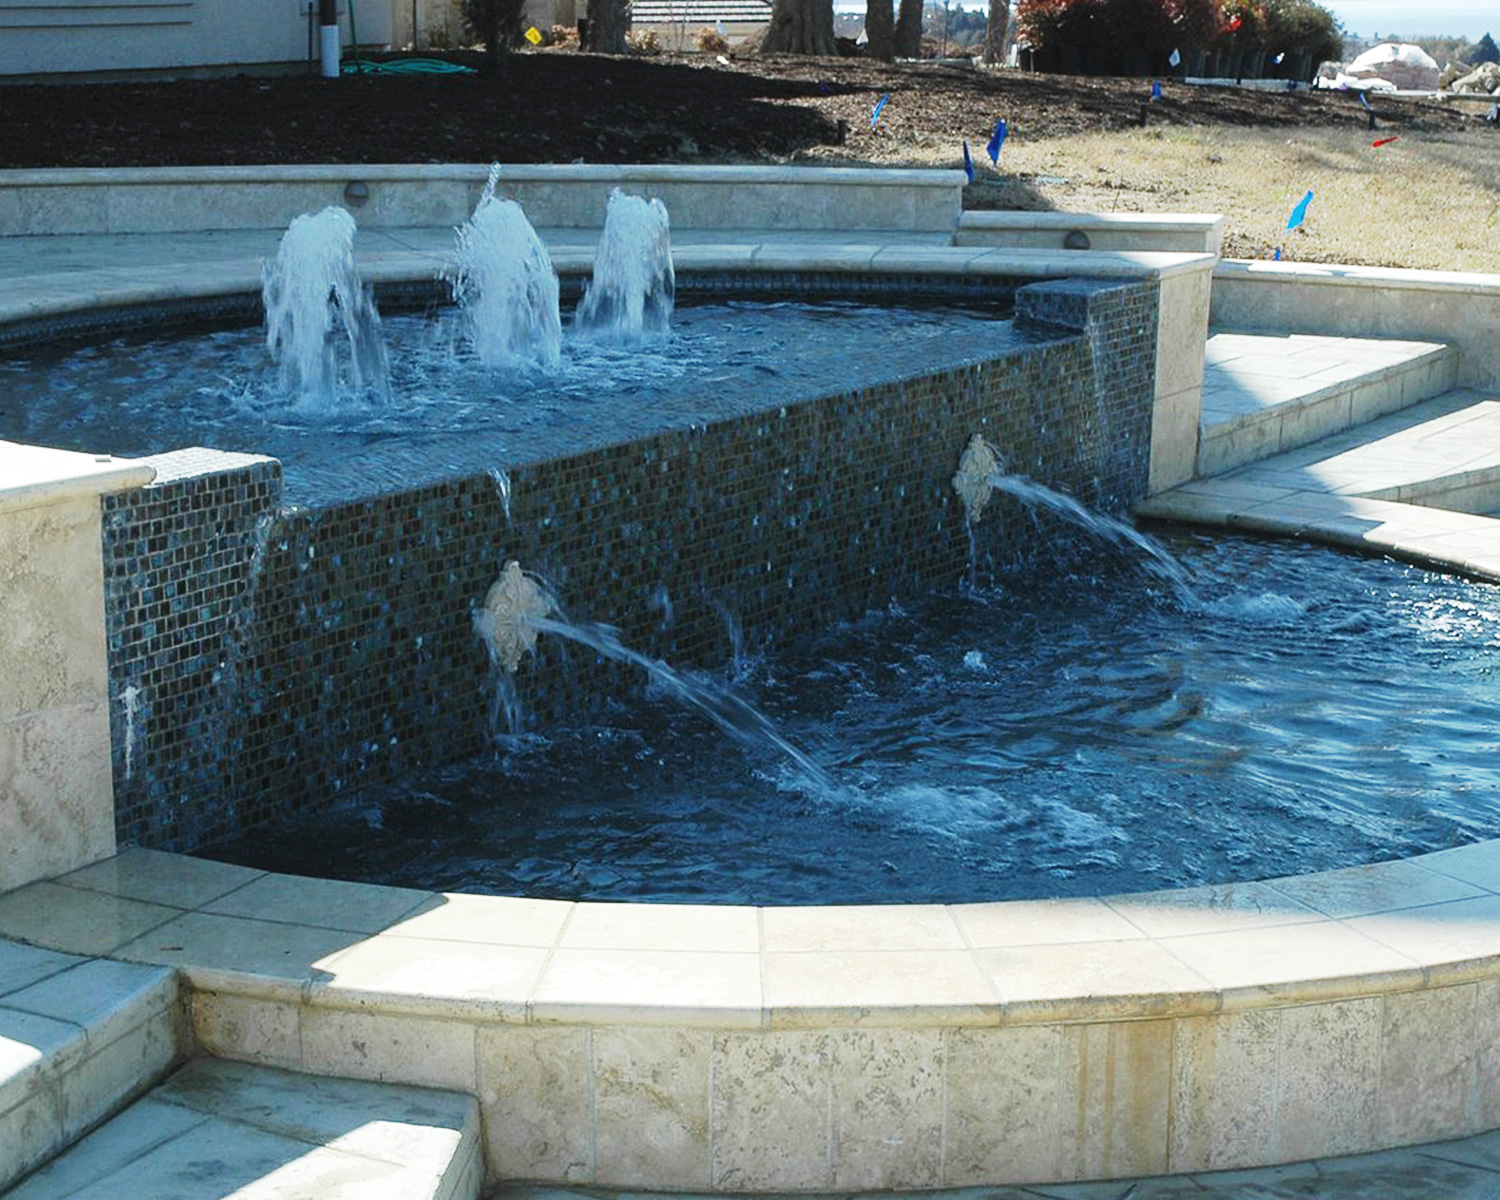 LakePointePools-CustomPool-customfeatures-fountain2.jpg